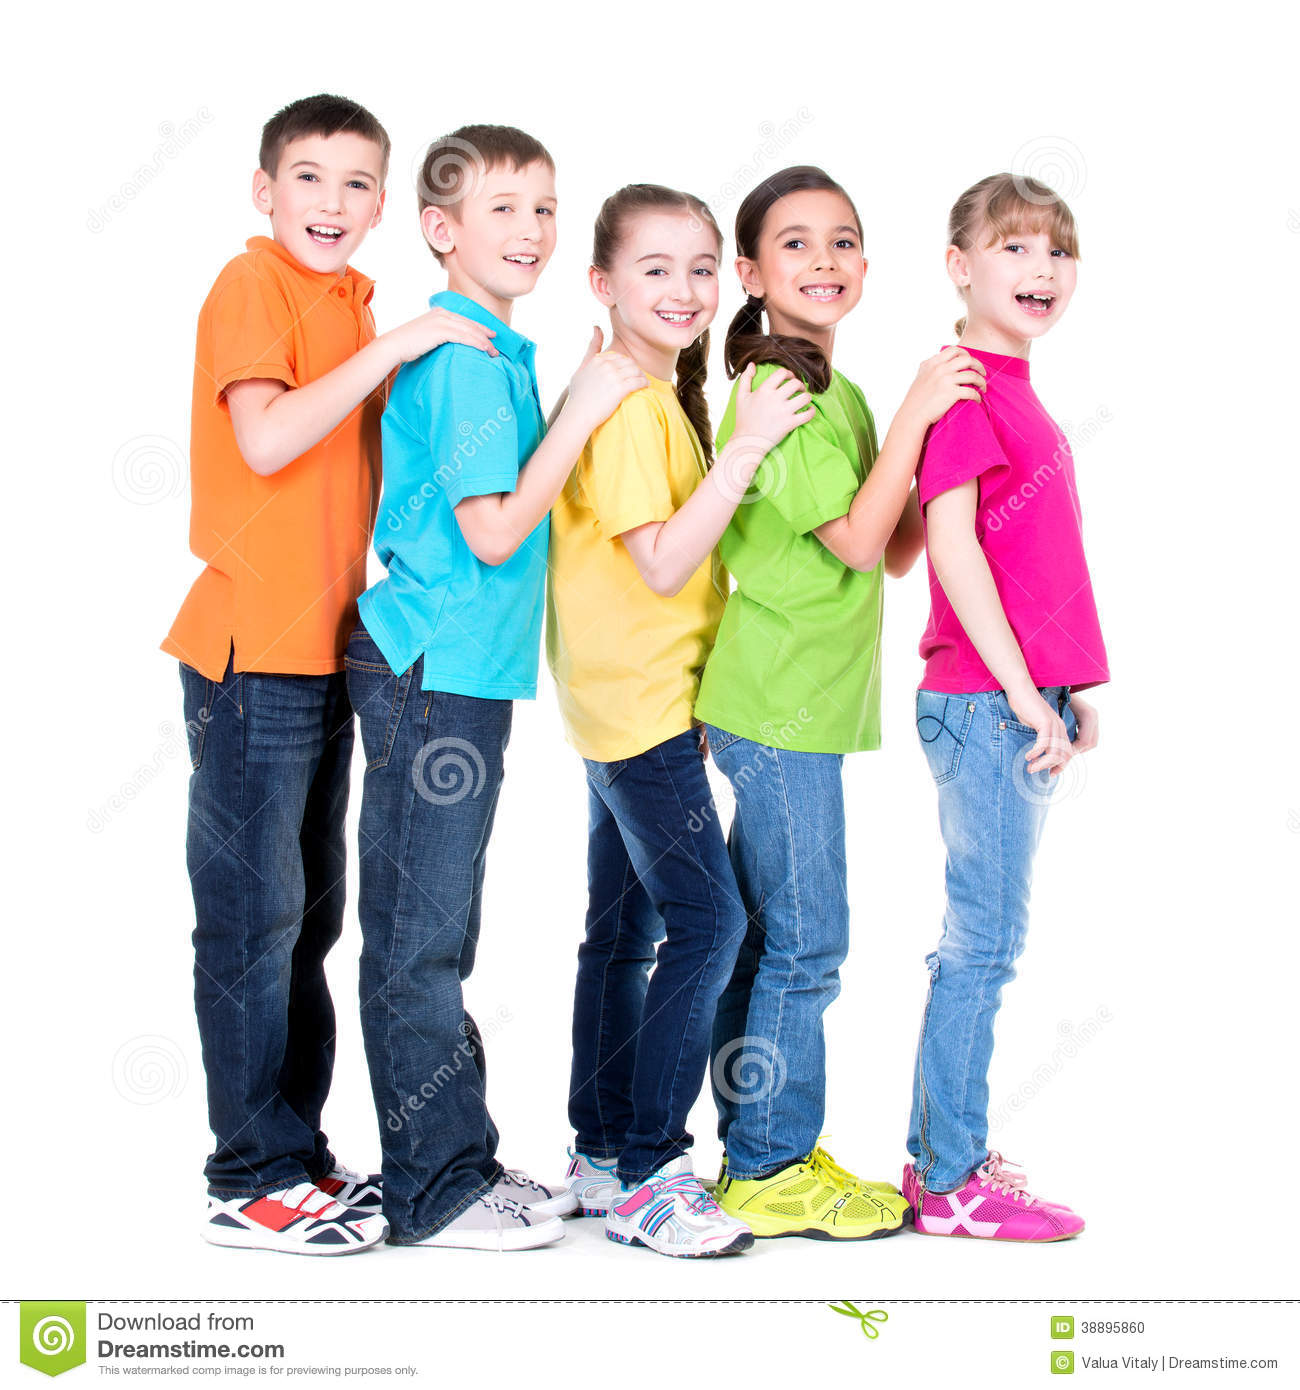 Group of happy children in colorful t shirts stand behind each other